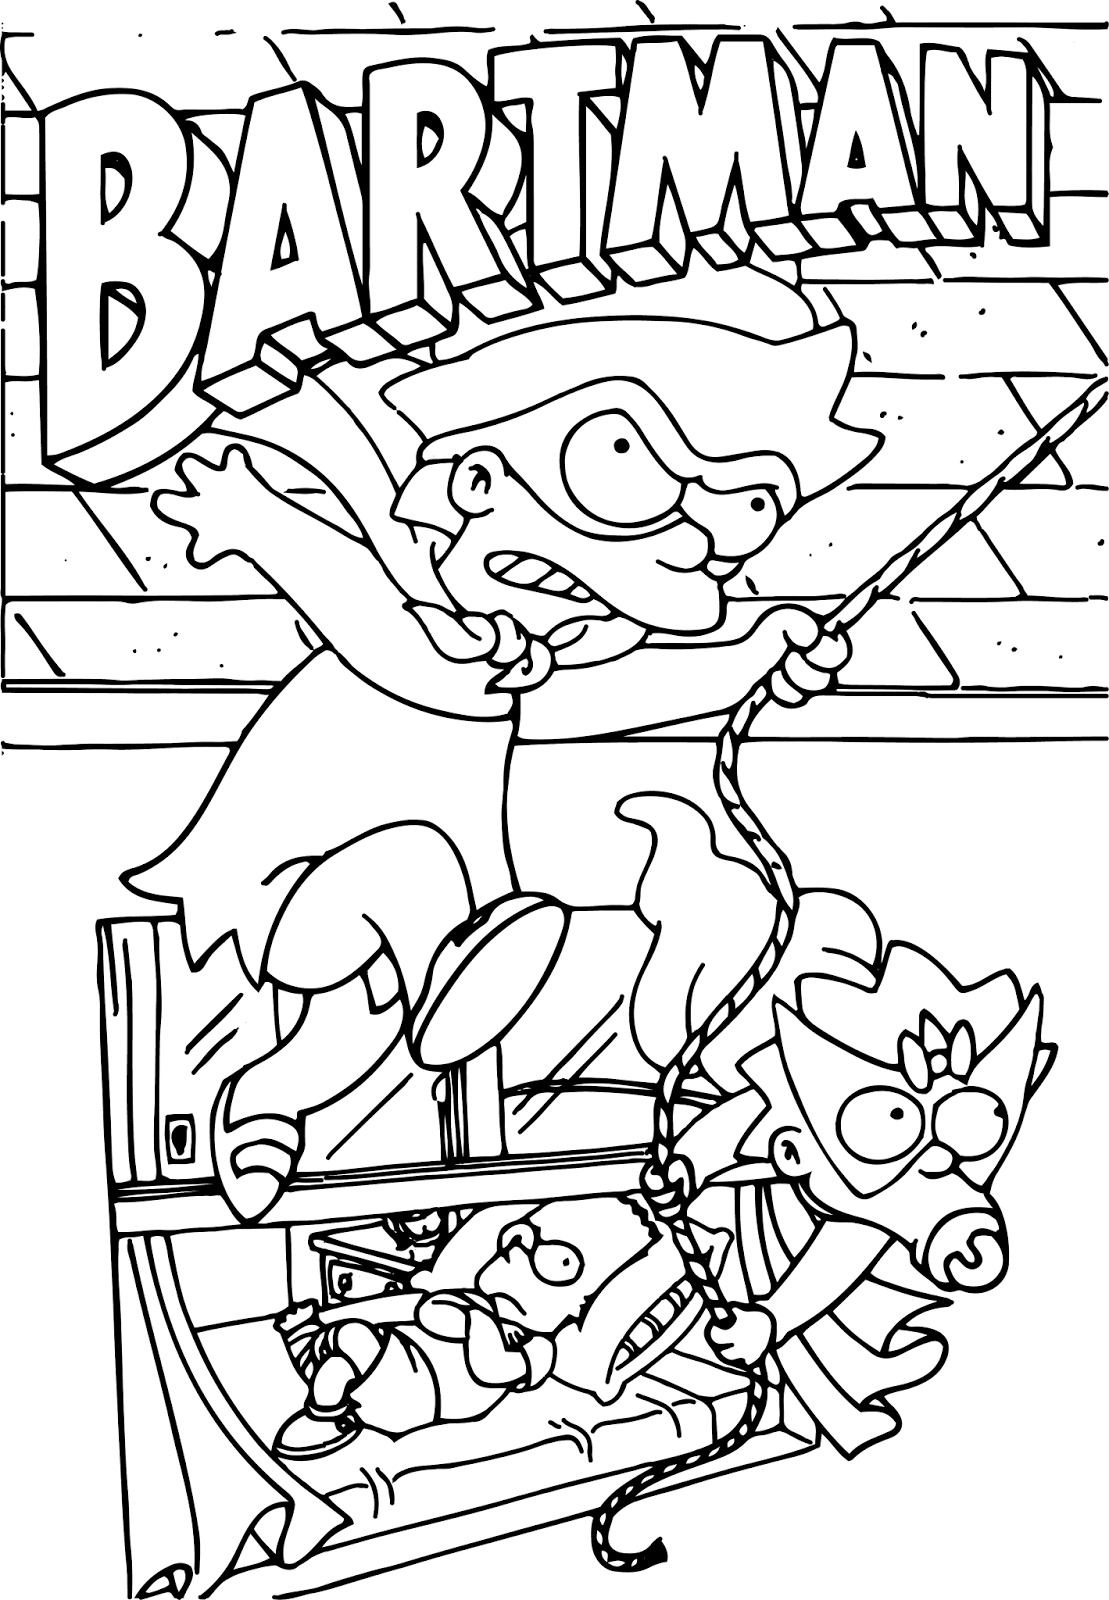 bartman simpsons coloring pages - photo#2